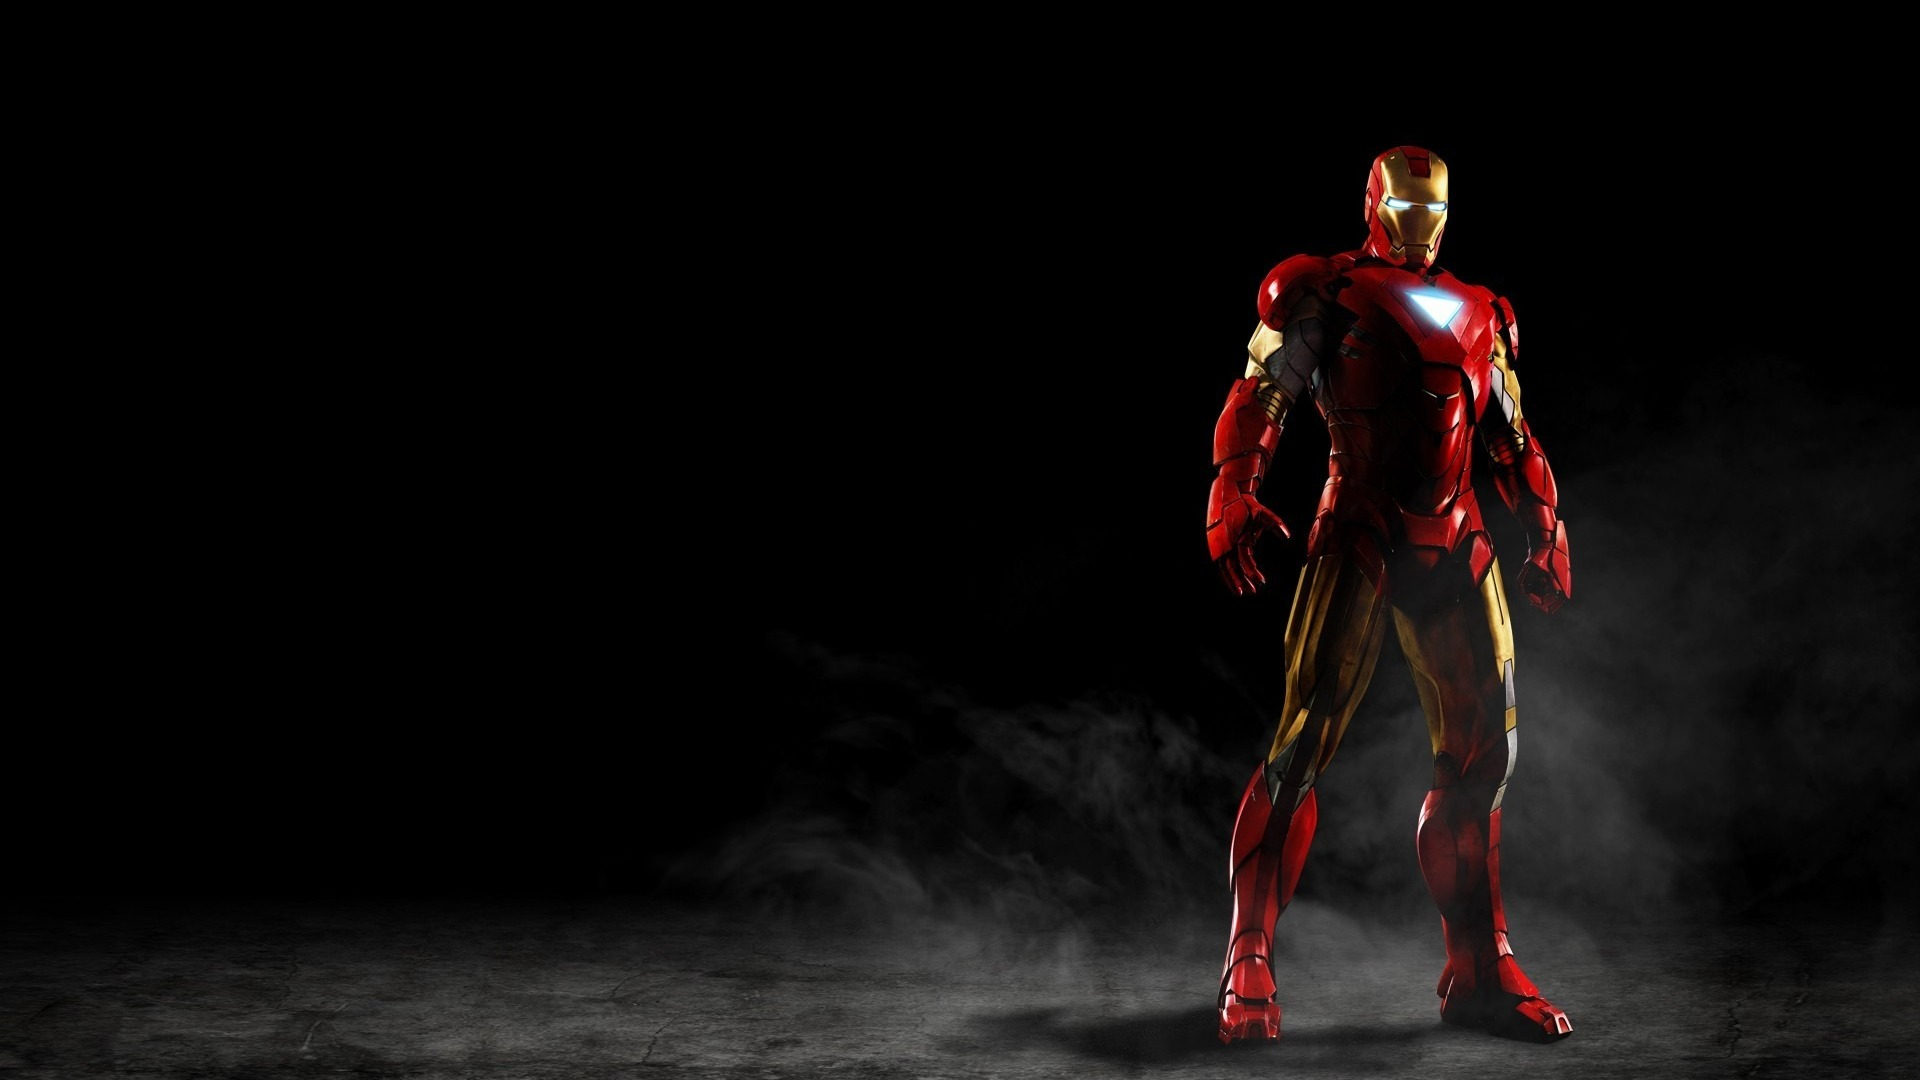 Iron Man 3 Photos HD Wallpaper Movies Wallpapers 1920x1080